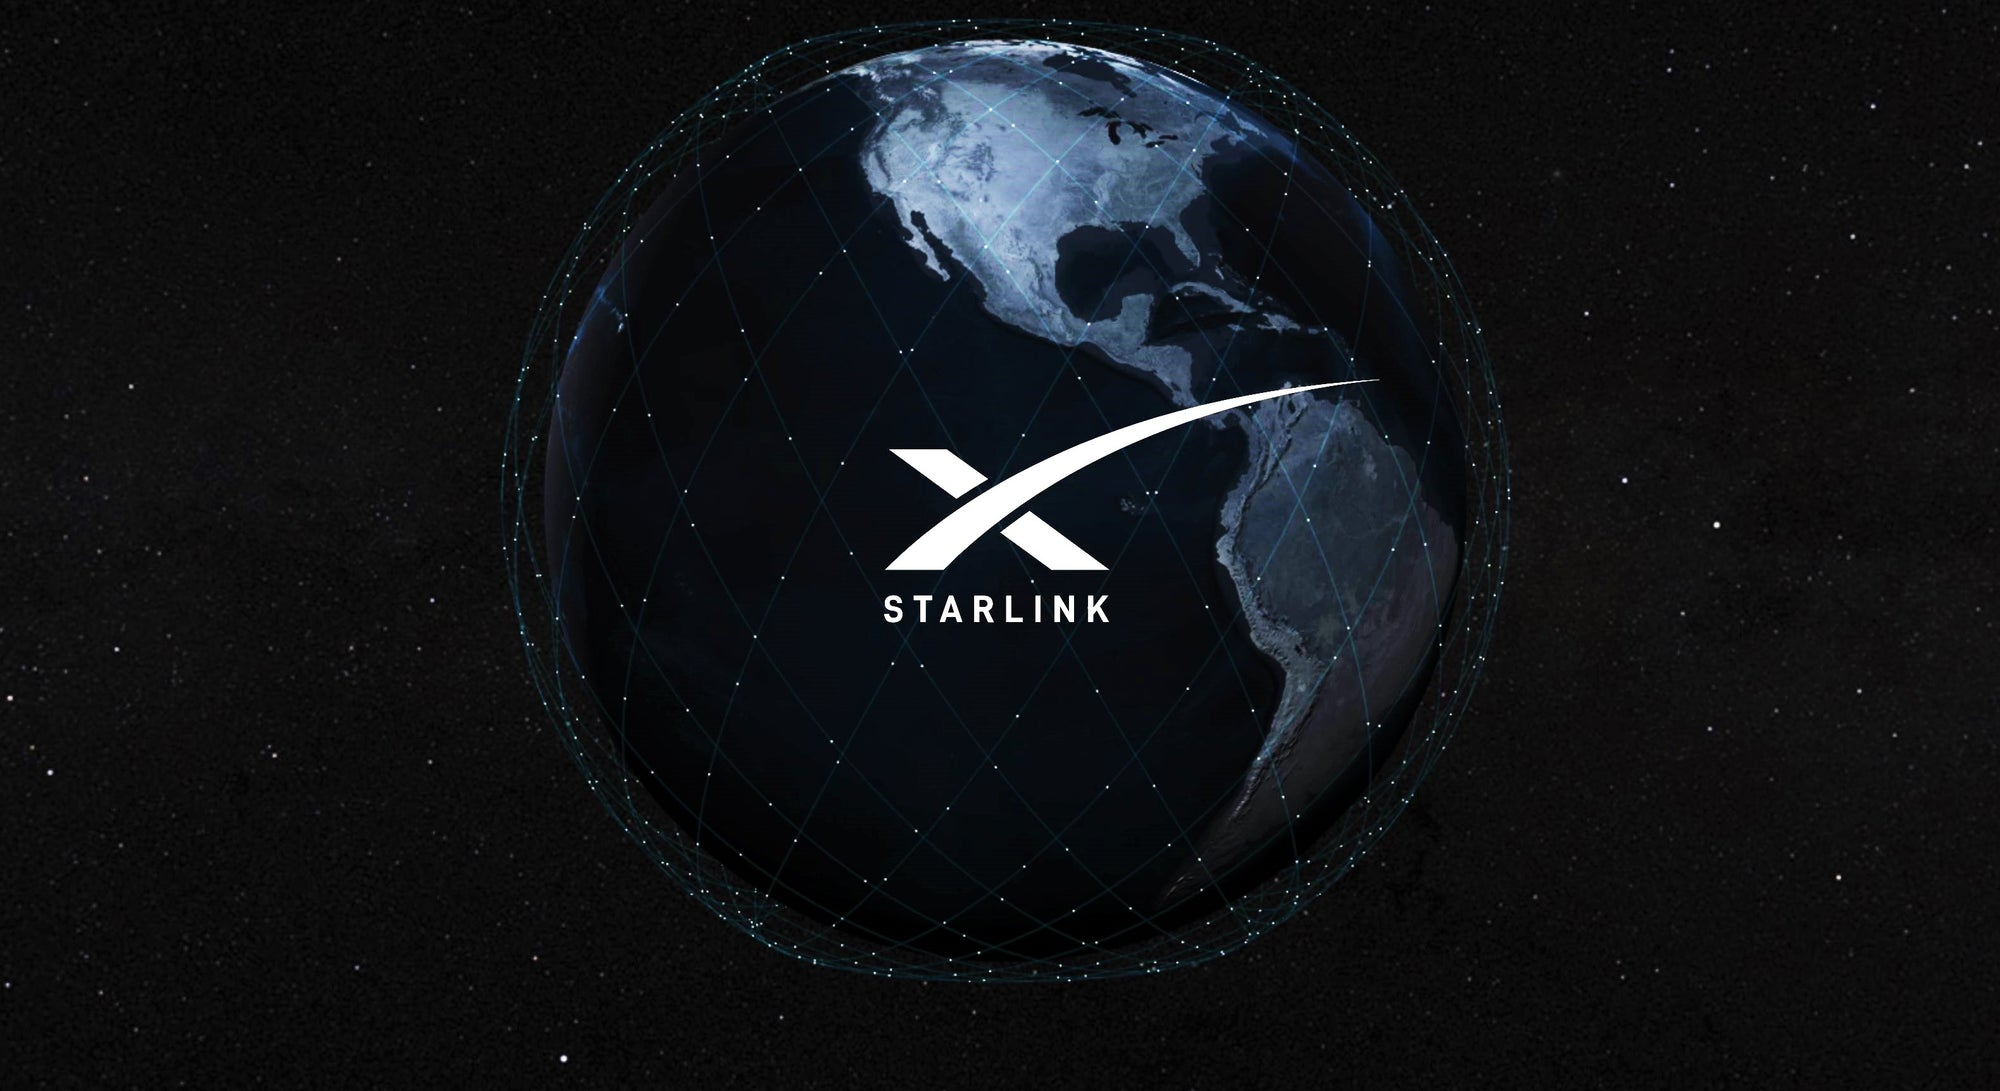 SpaceX is seeking a Software Engineer to develop Starlink 'Mobile Applications'